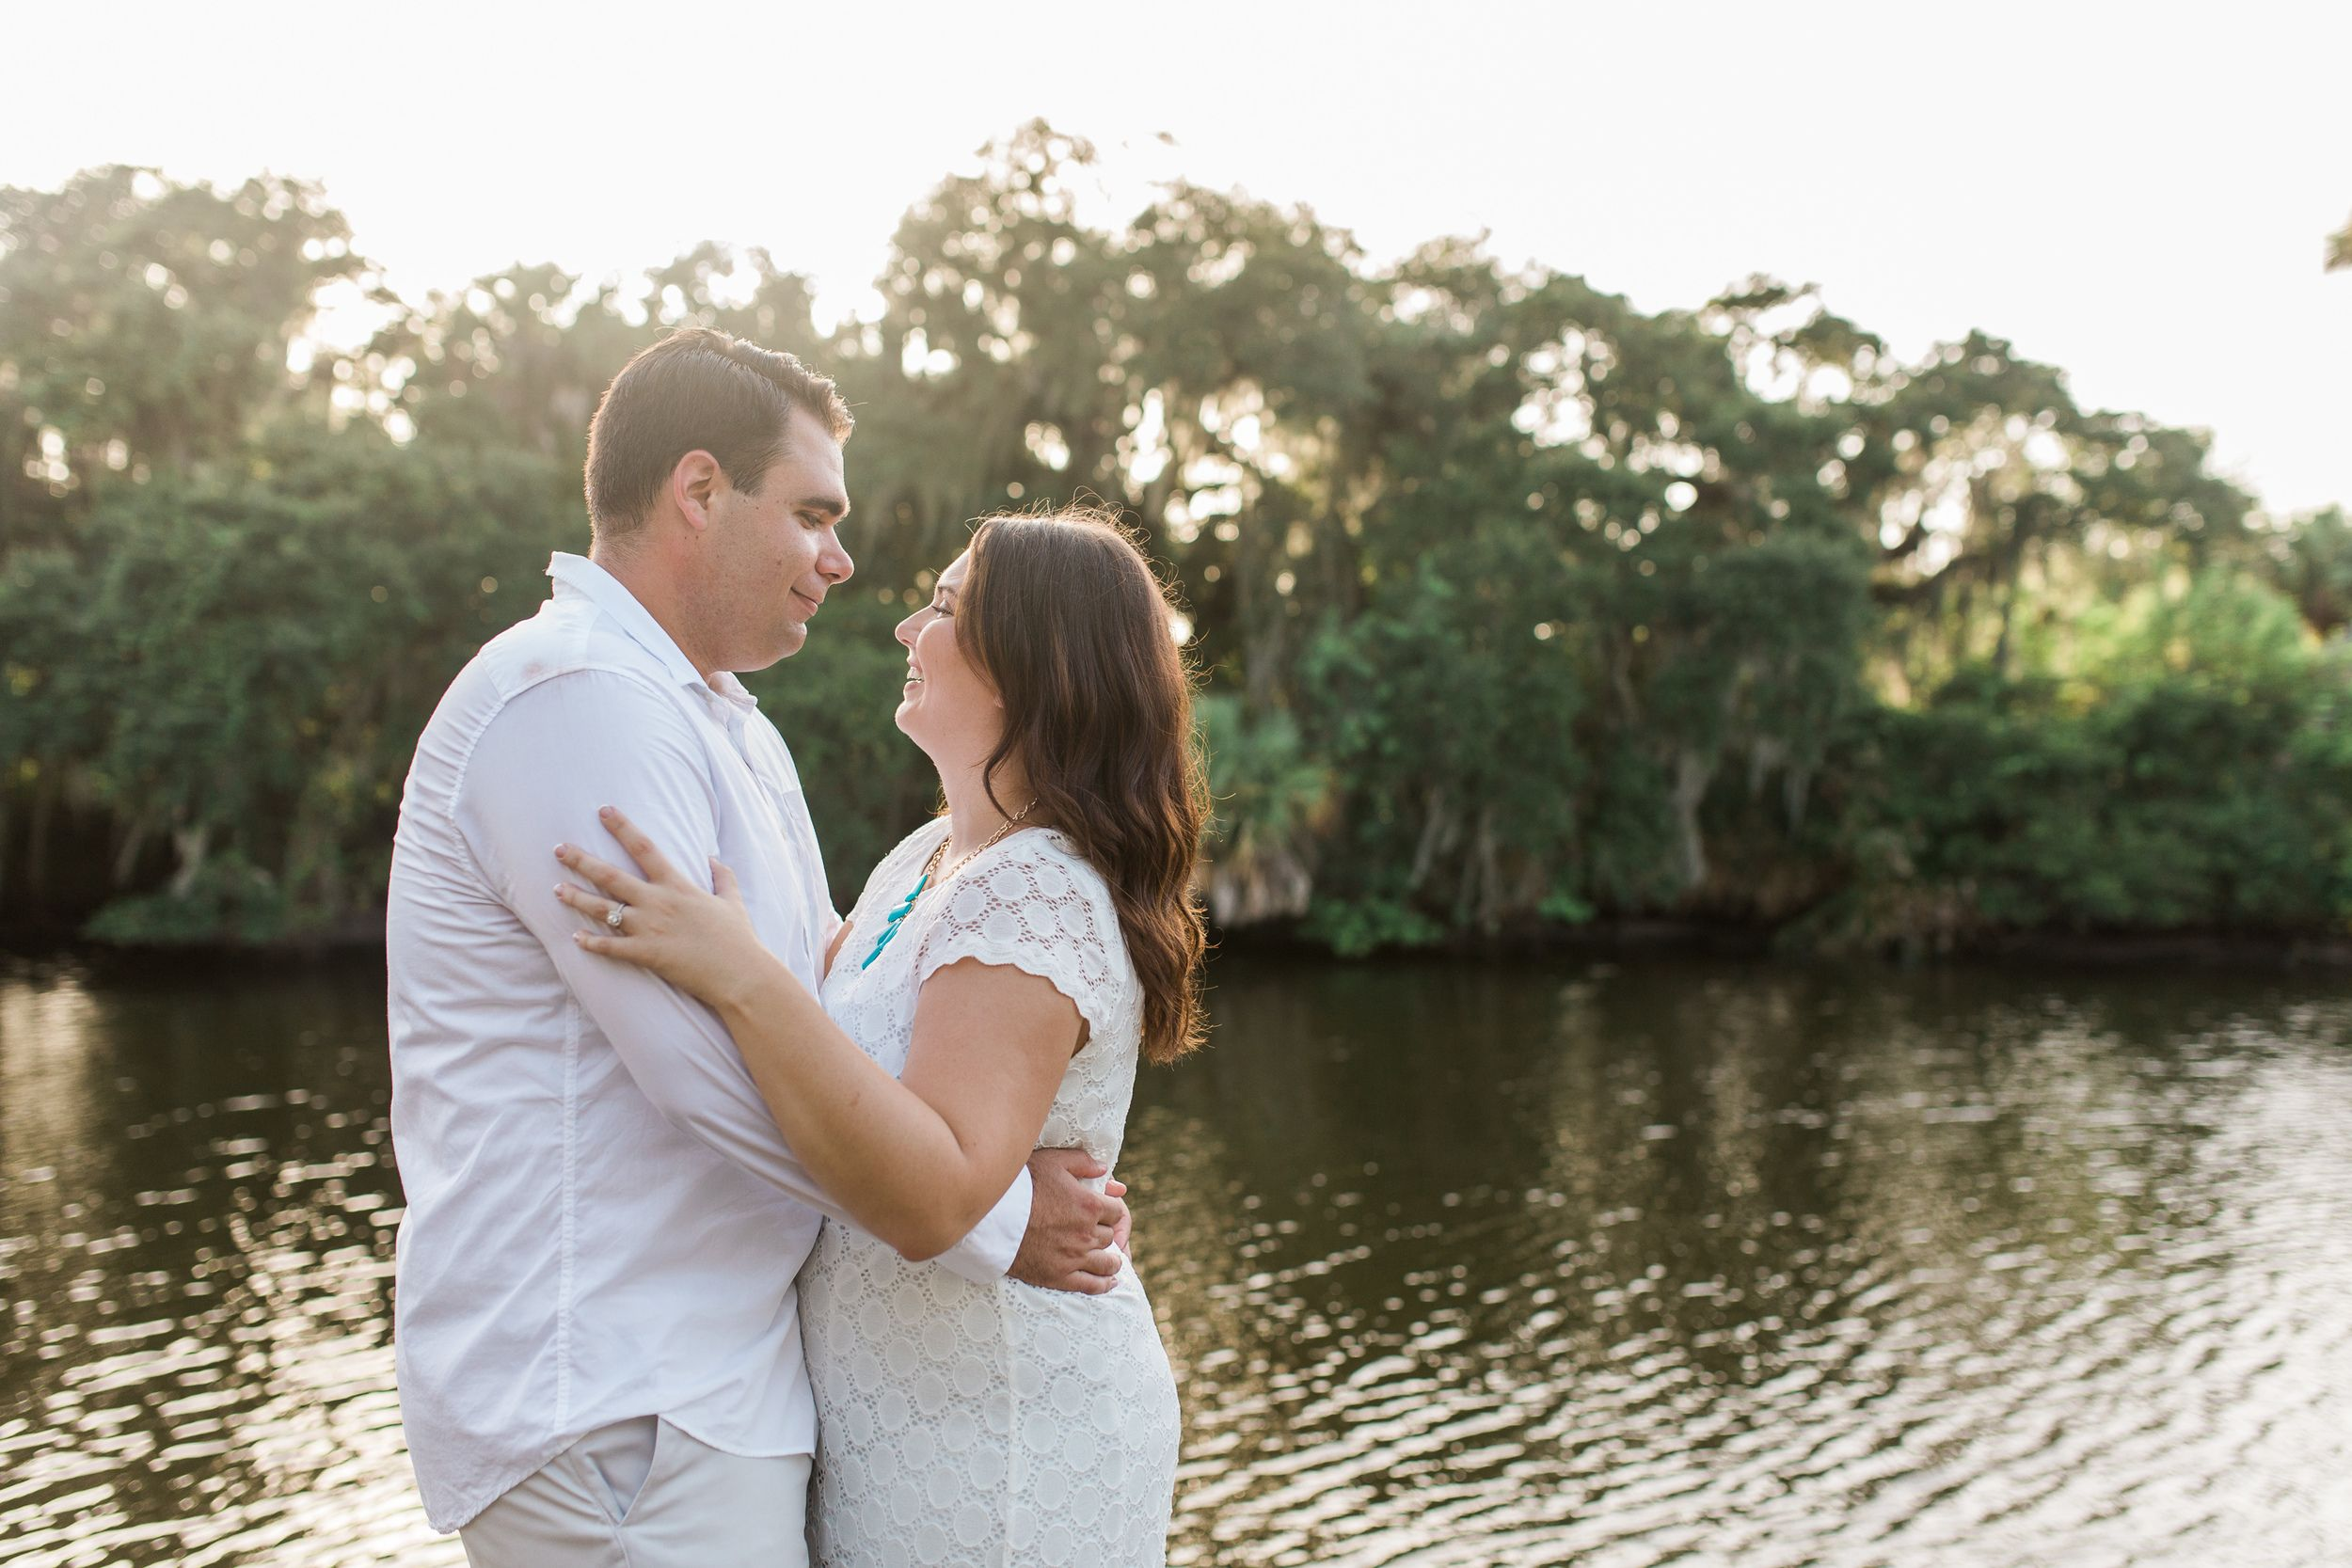 Old Florida Engagement Photos: Brittany + Chris